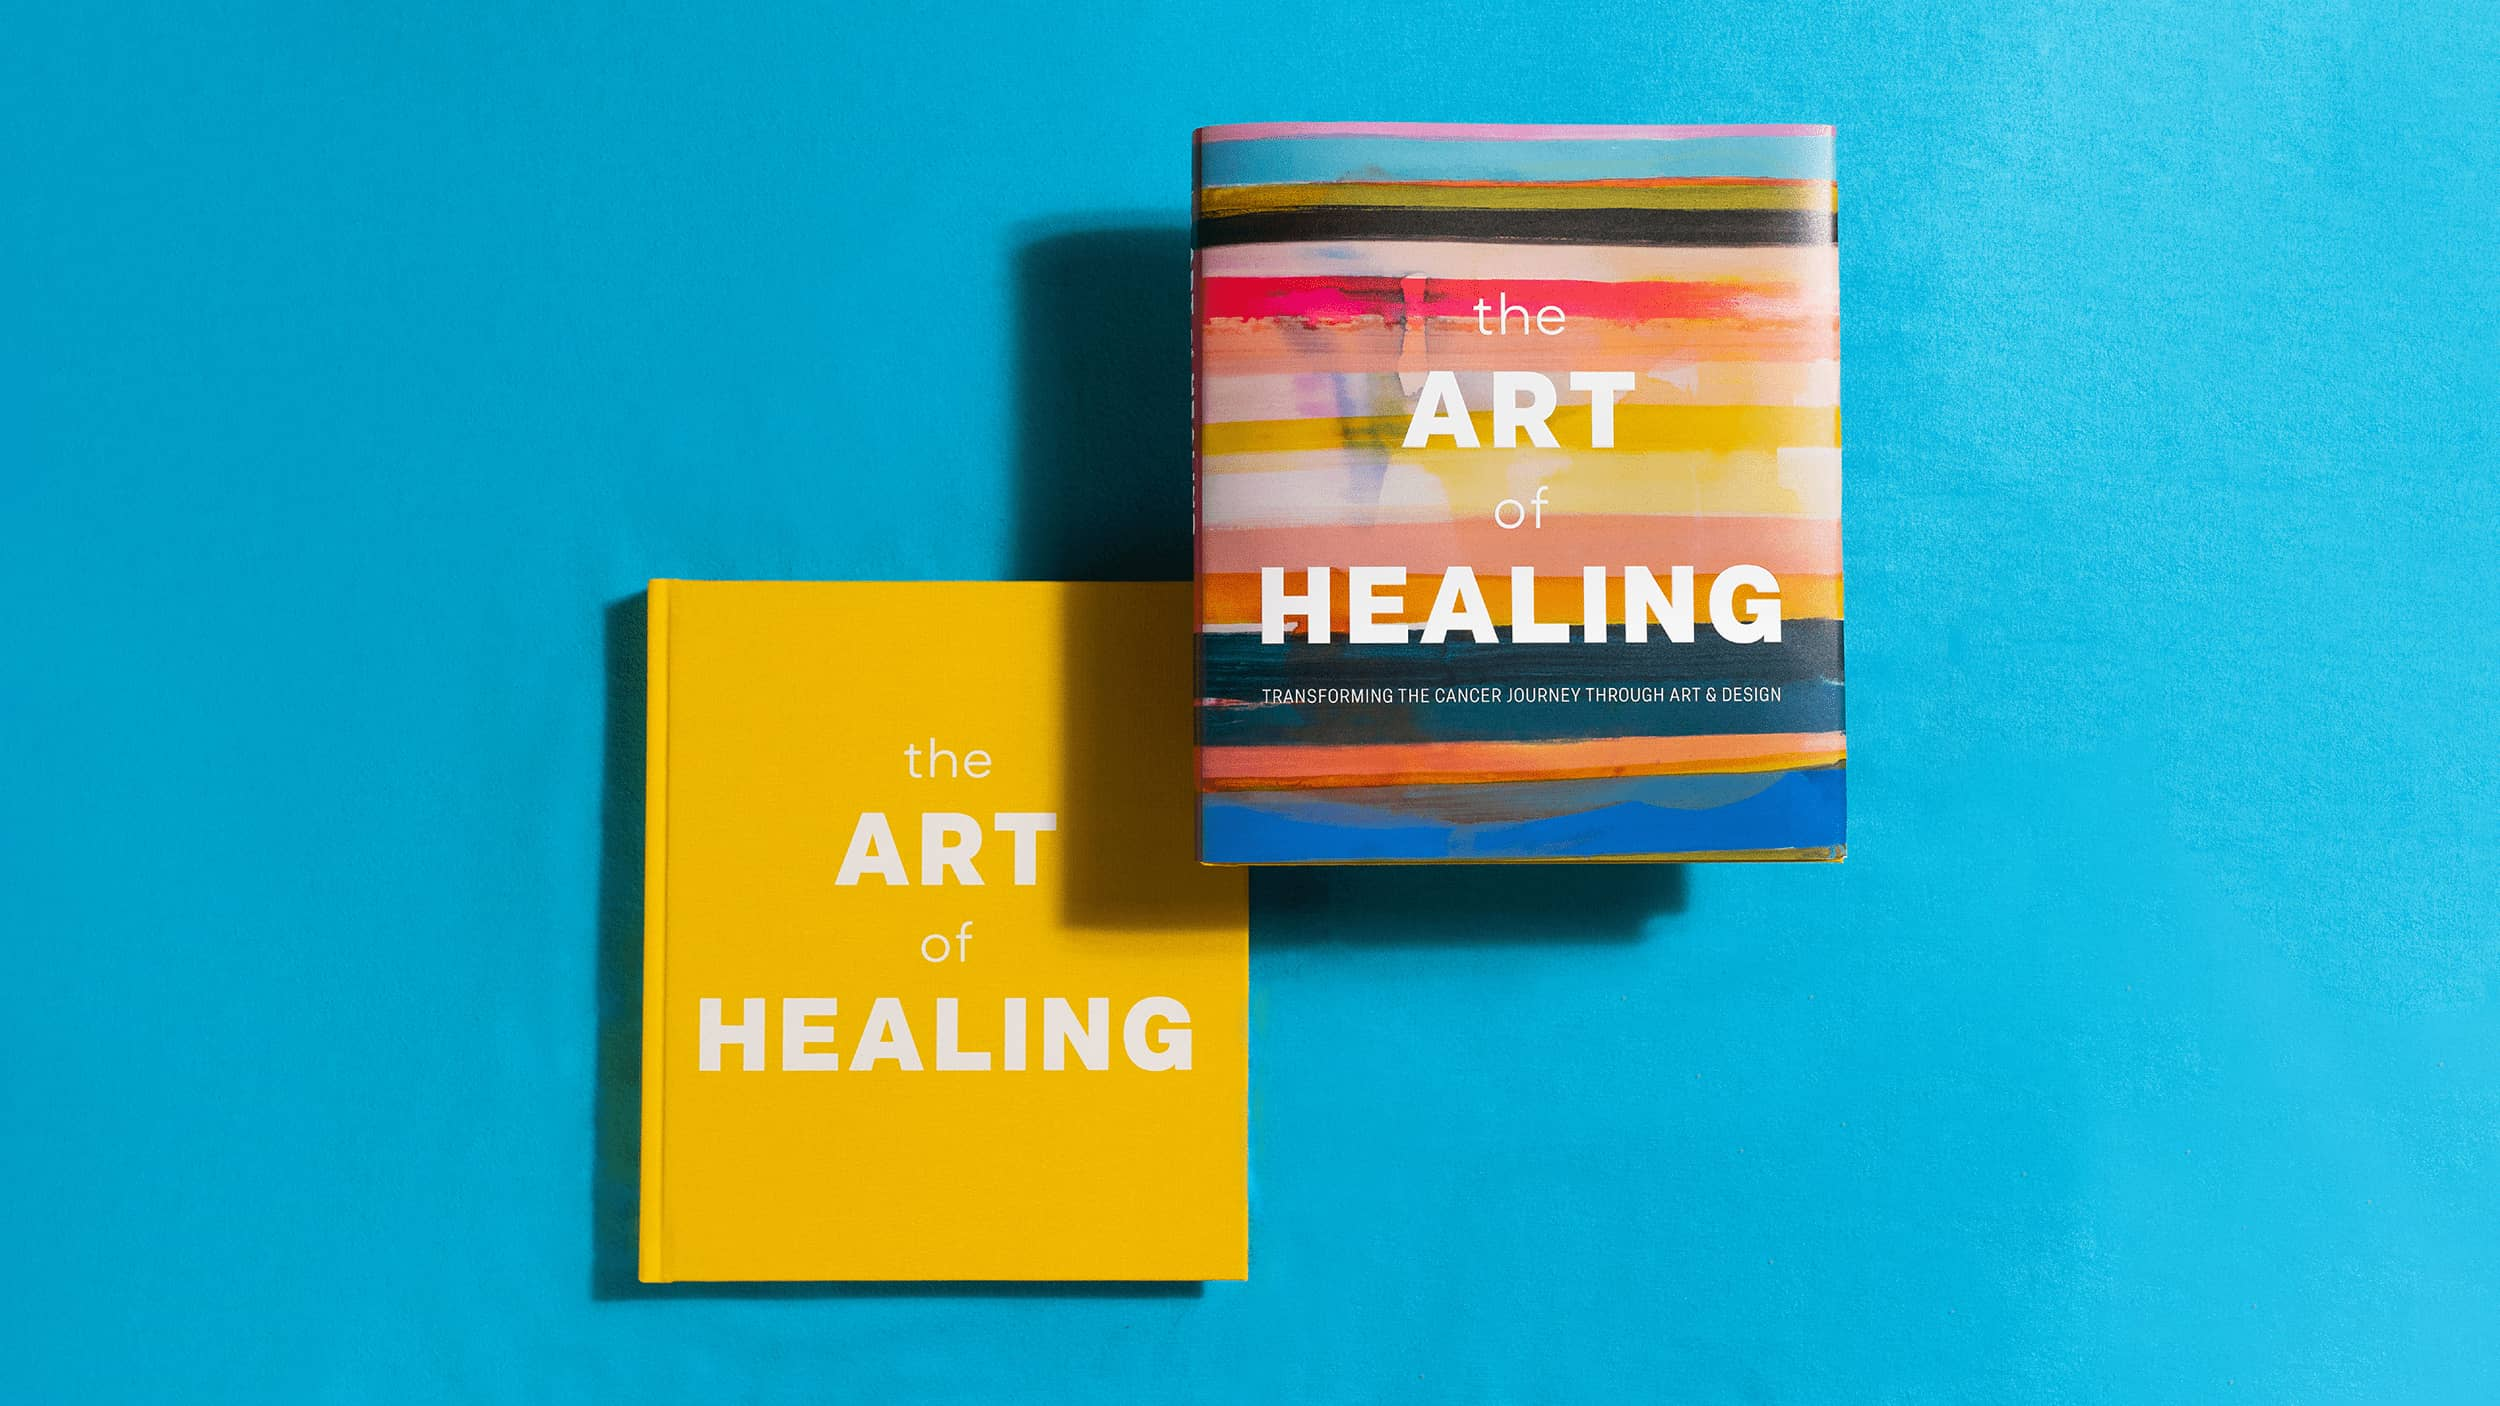 The Art of Healing book cover with and without dust jacket